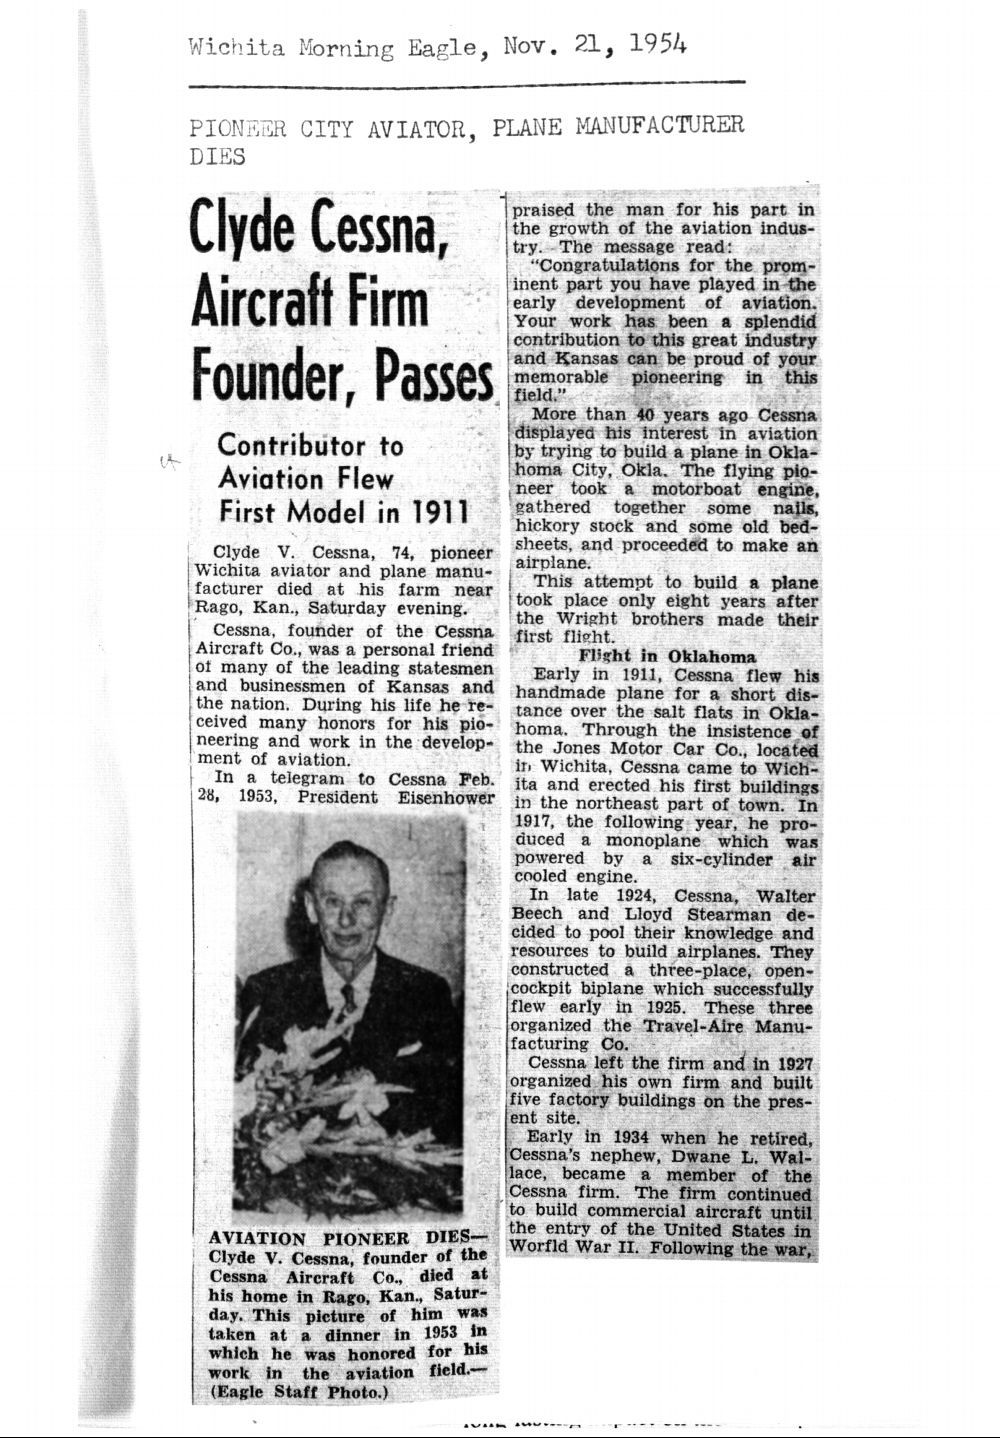 Clyde Cessna, aircraft firm founder, passes - 20